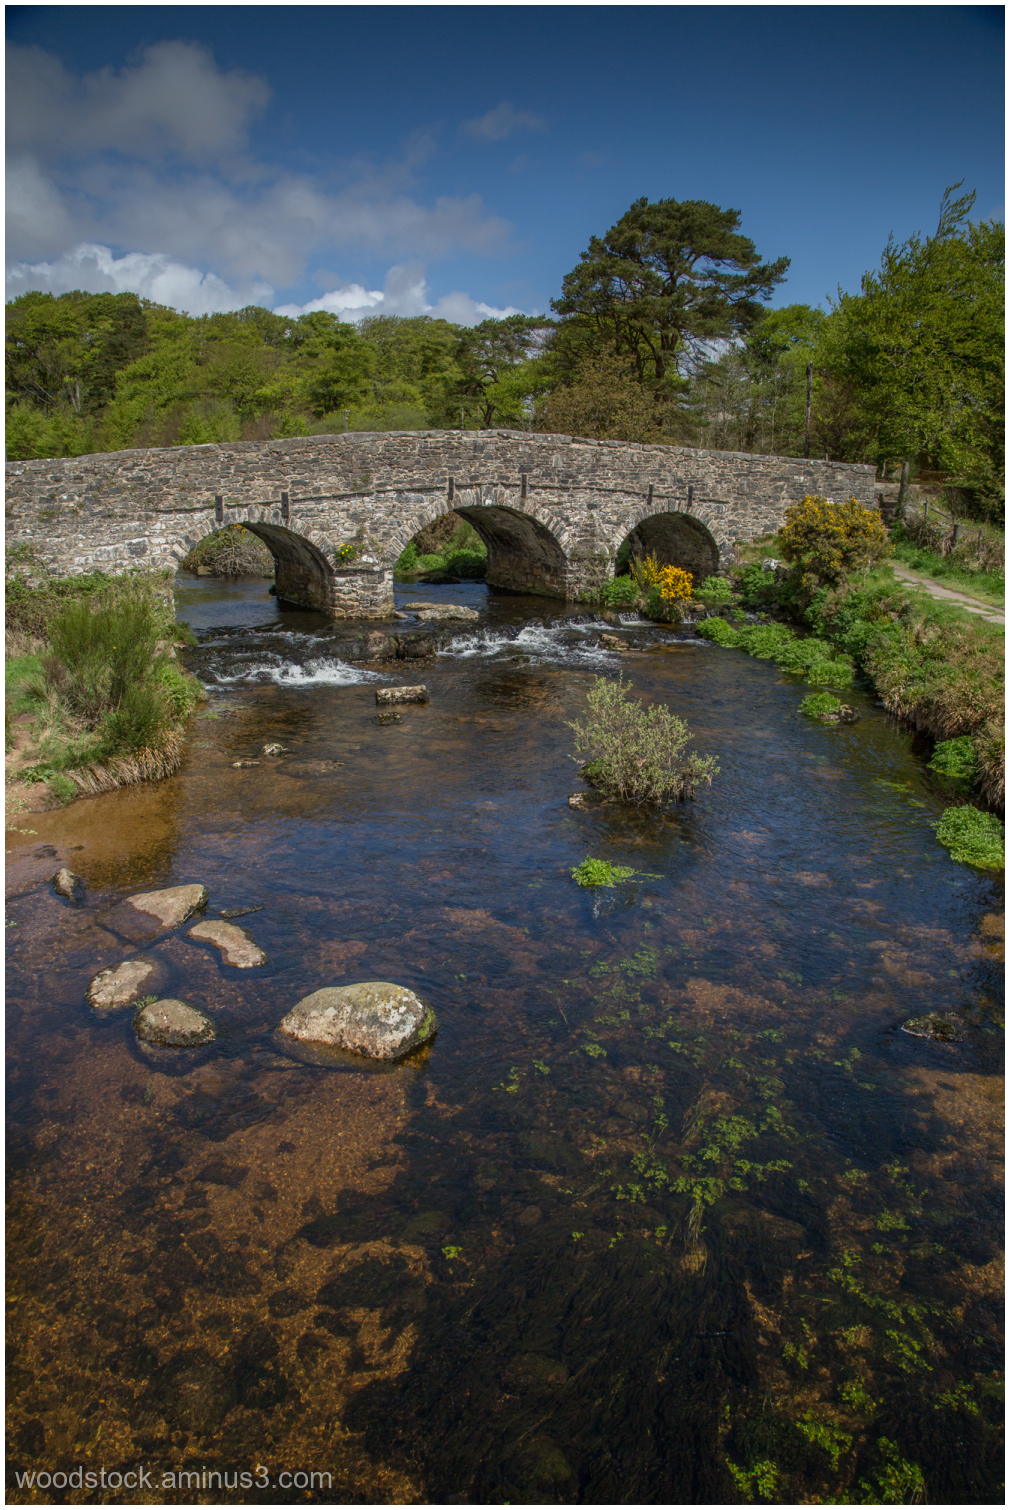 Post Bridge, Dartmoor